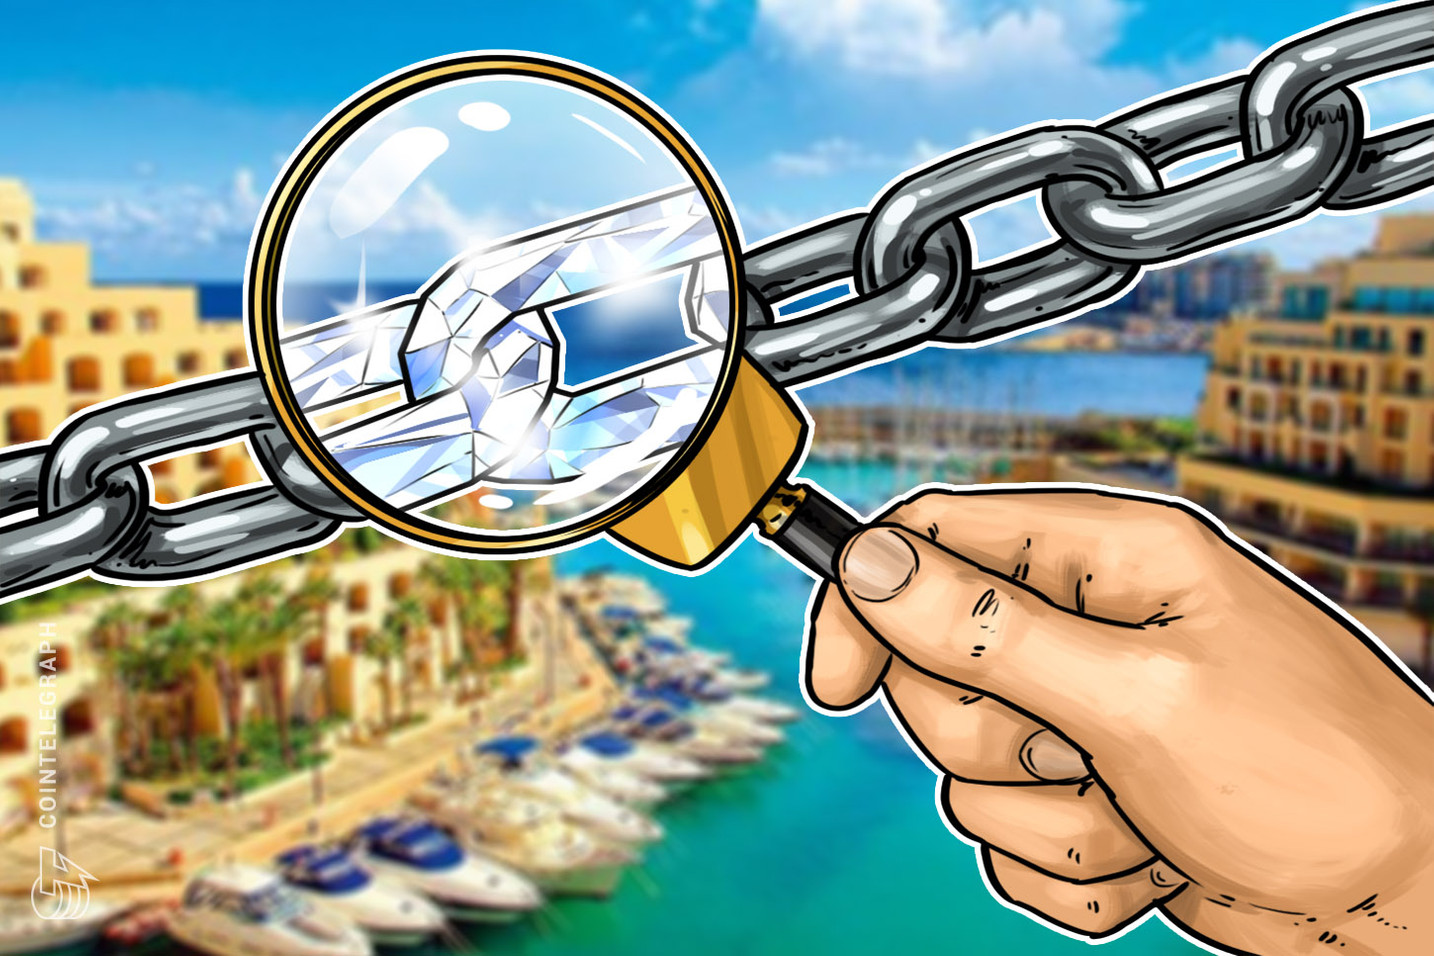 New Malta Bankers Association Chairman Praises Blockchain, Says Crypto 'Here to Stay'